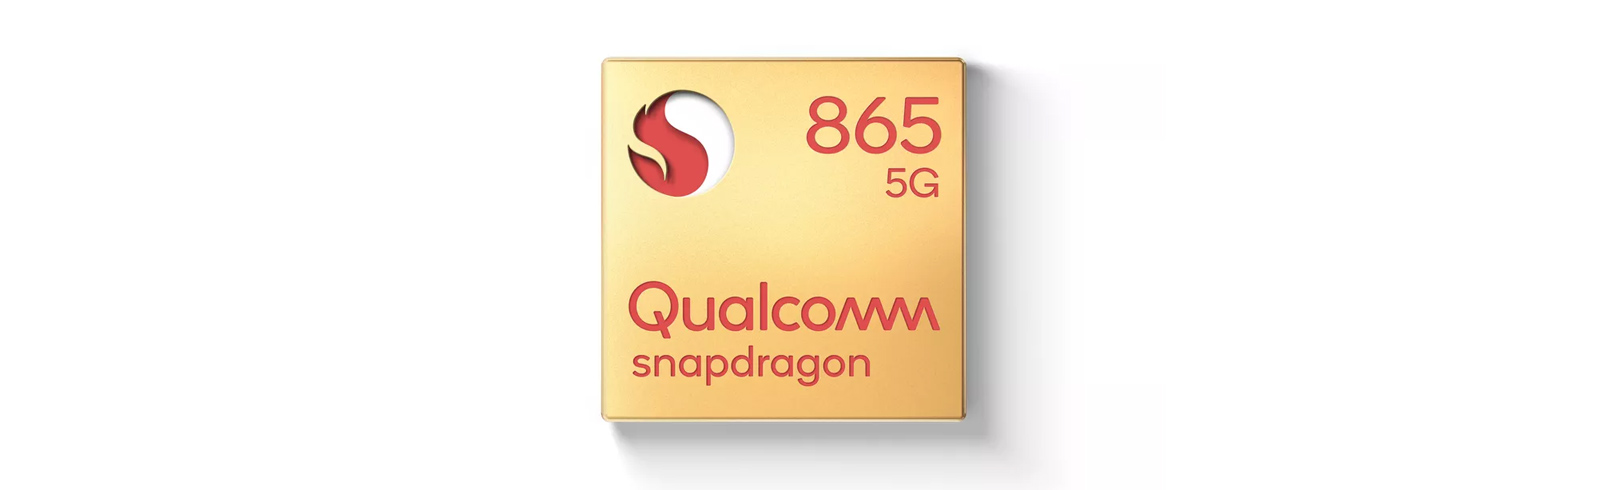 Qualcomm unveils the Snapdragon 865 and Snapdragon 765/765G chipsets